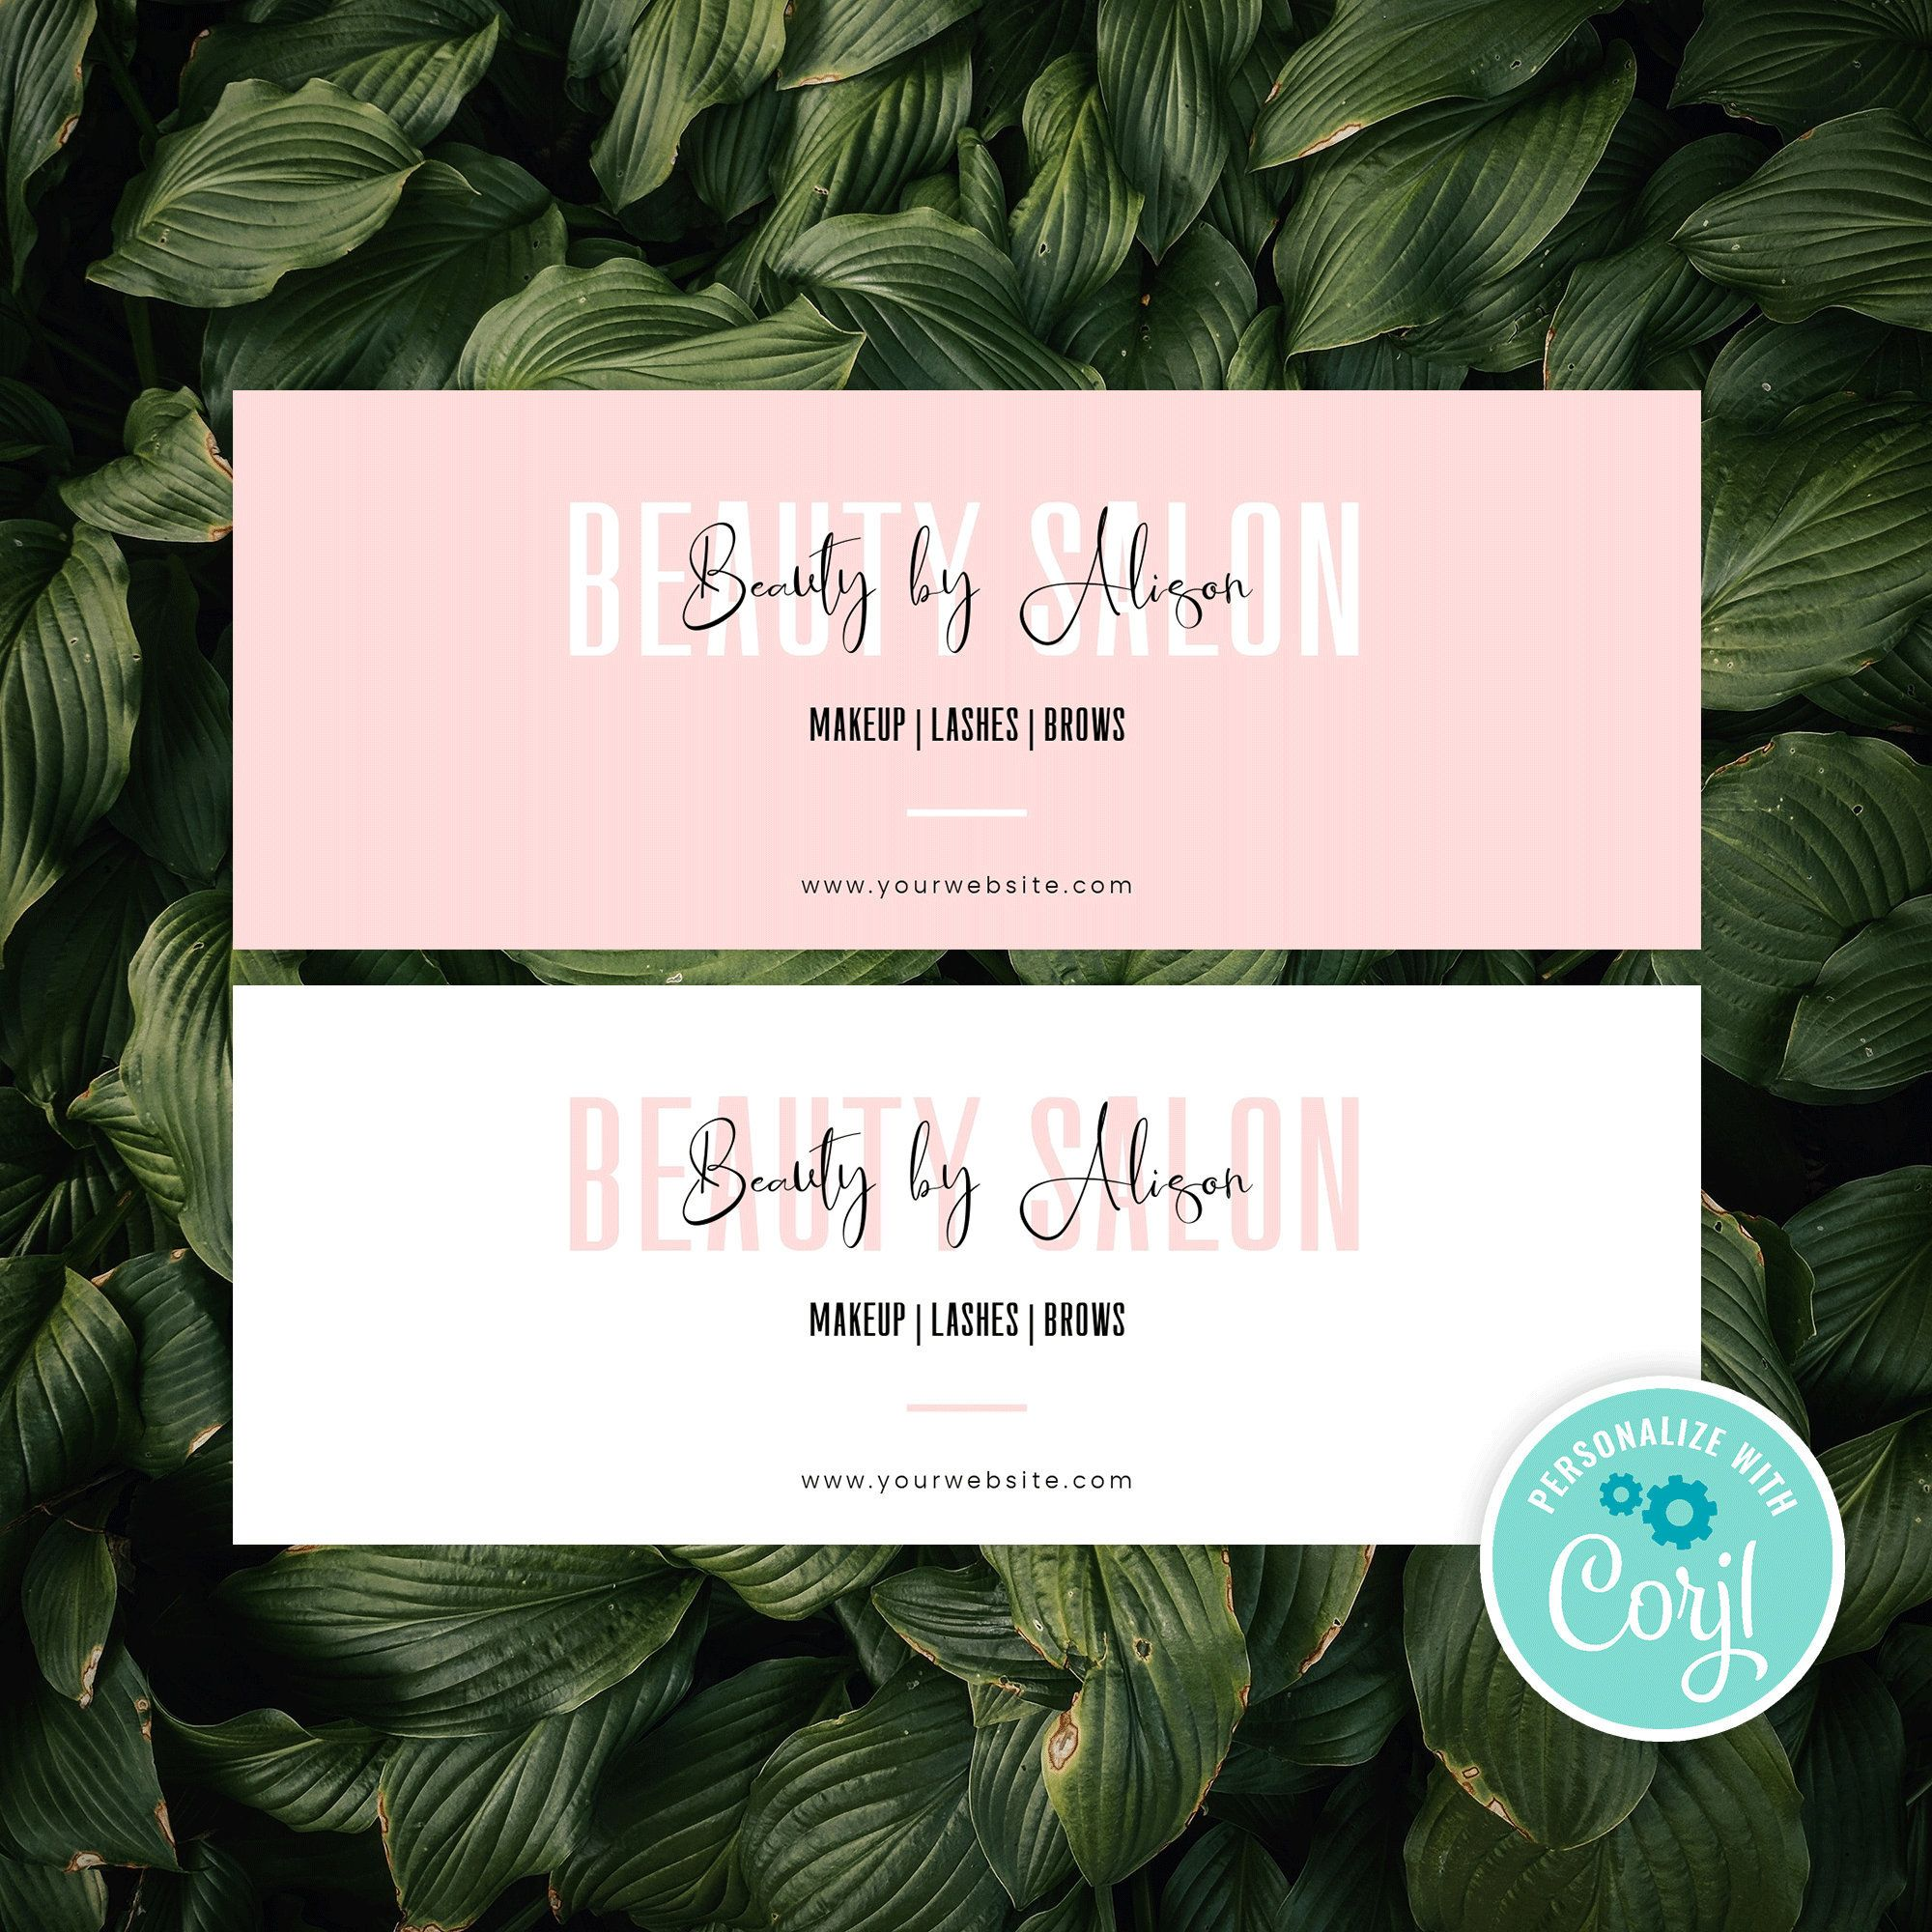 Editable Facebook Banners Facebook Page Cover Template Diy Etsy Facebook Cover Template Cover Template Facebook Page Cover Photo